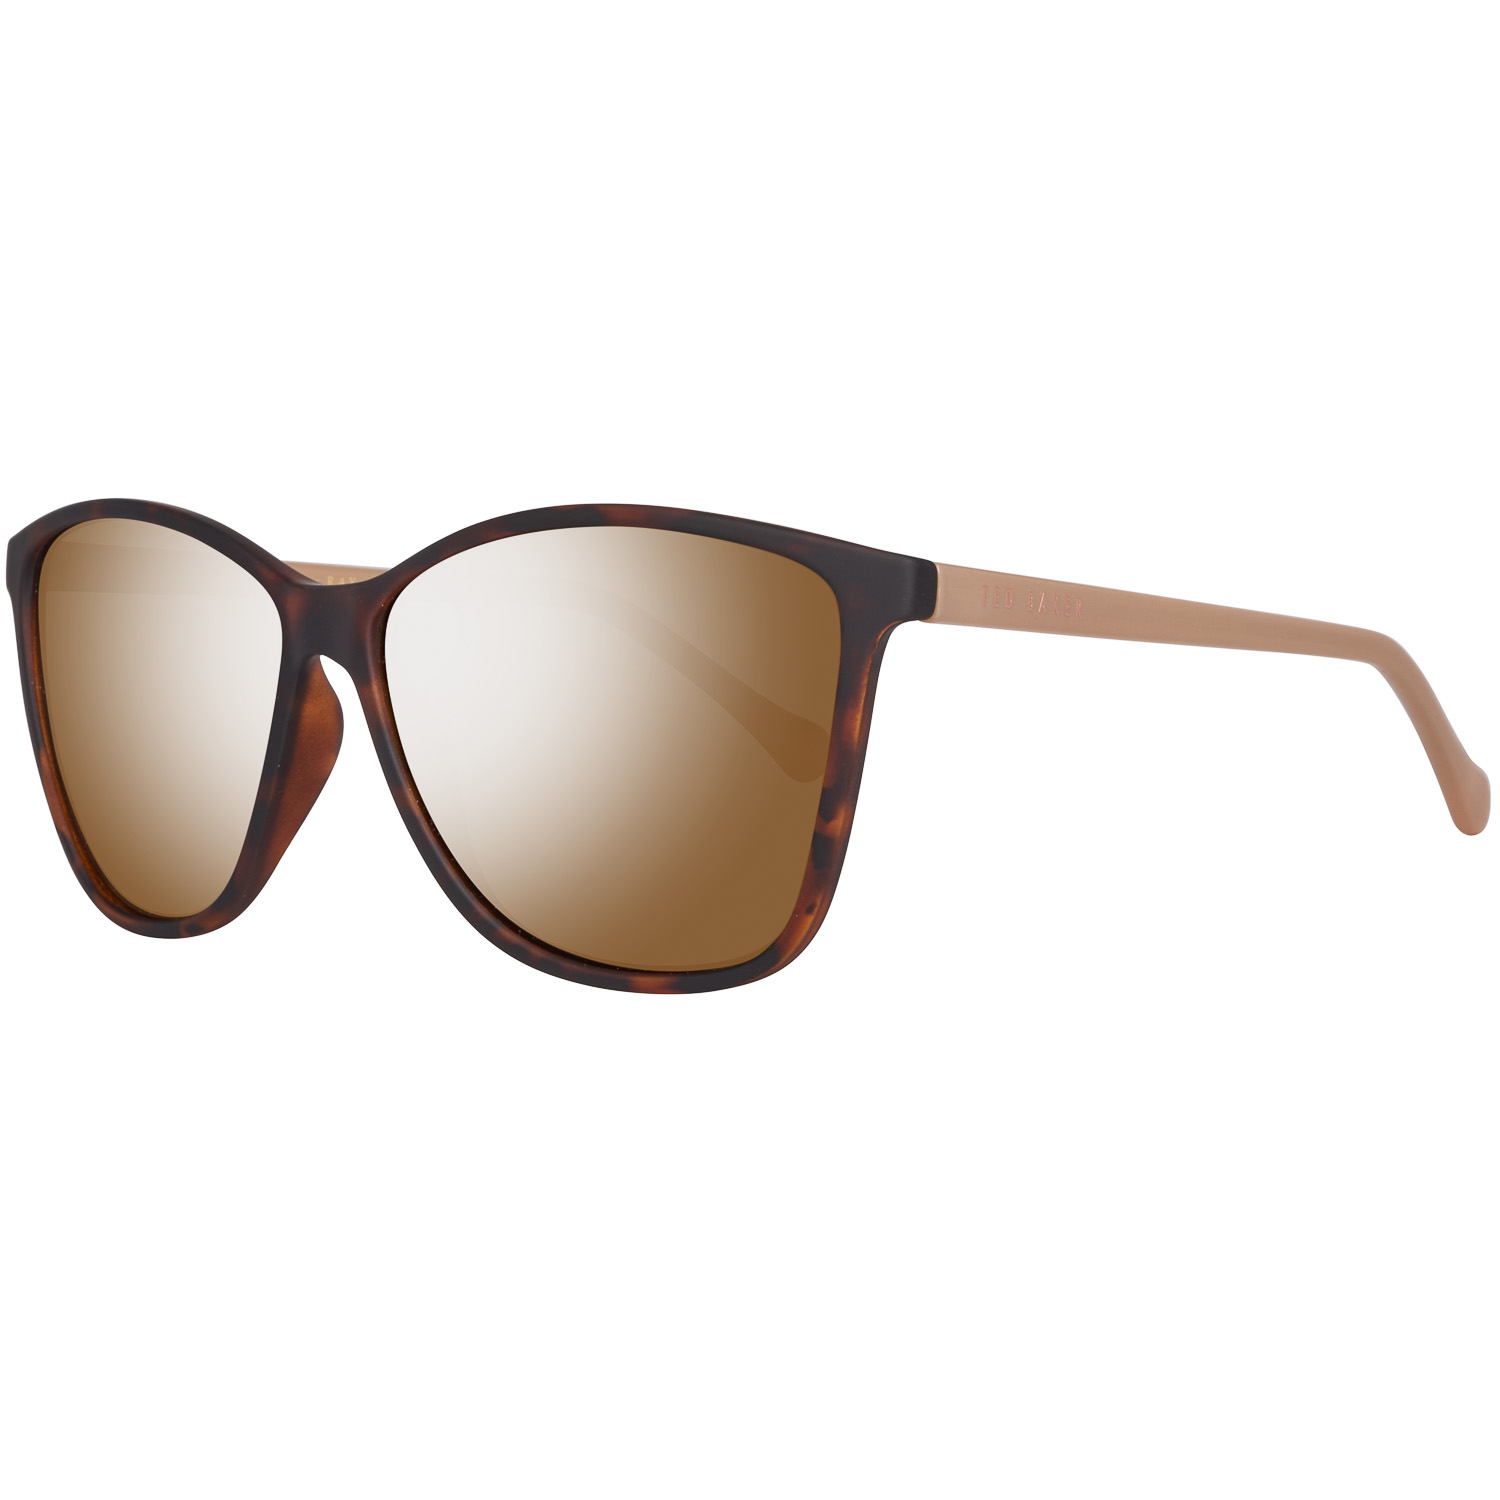 Ted Baker Sunglasses TB1443 159 58 Perry Brown